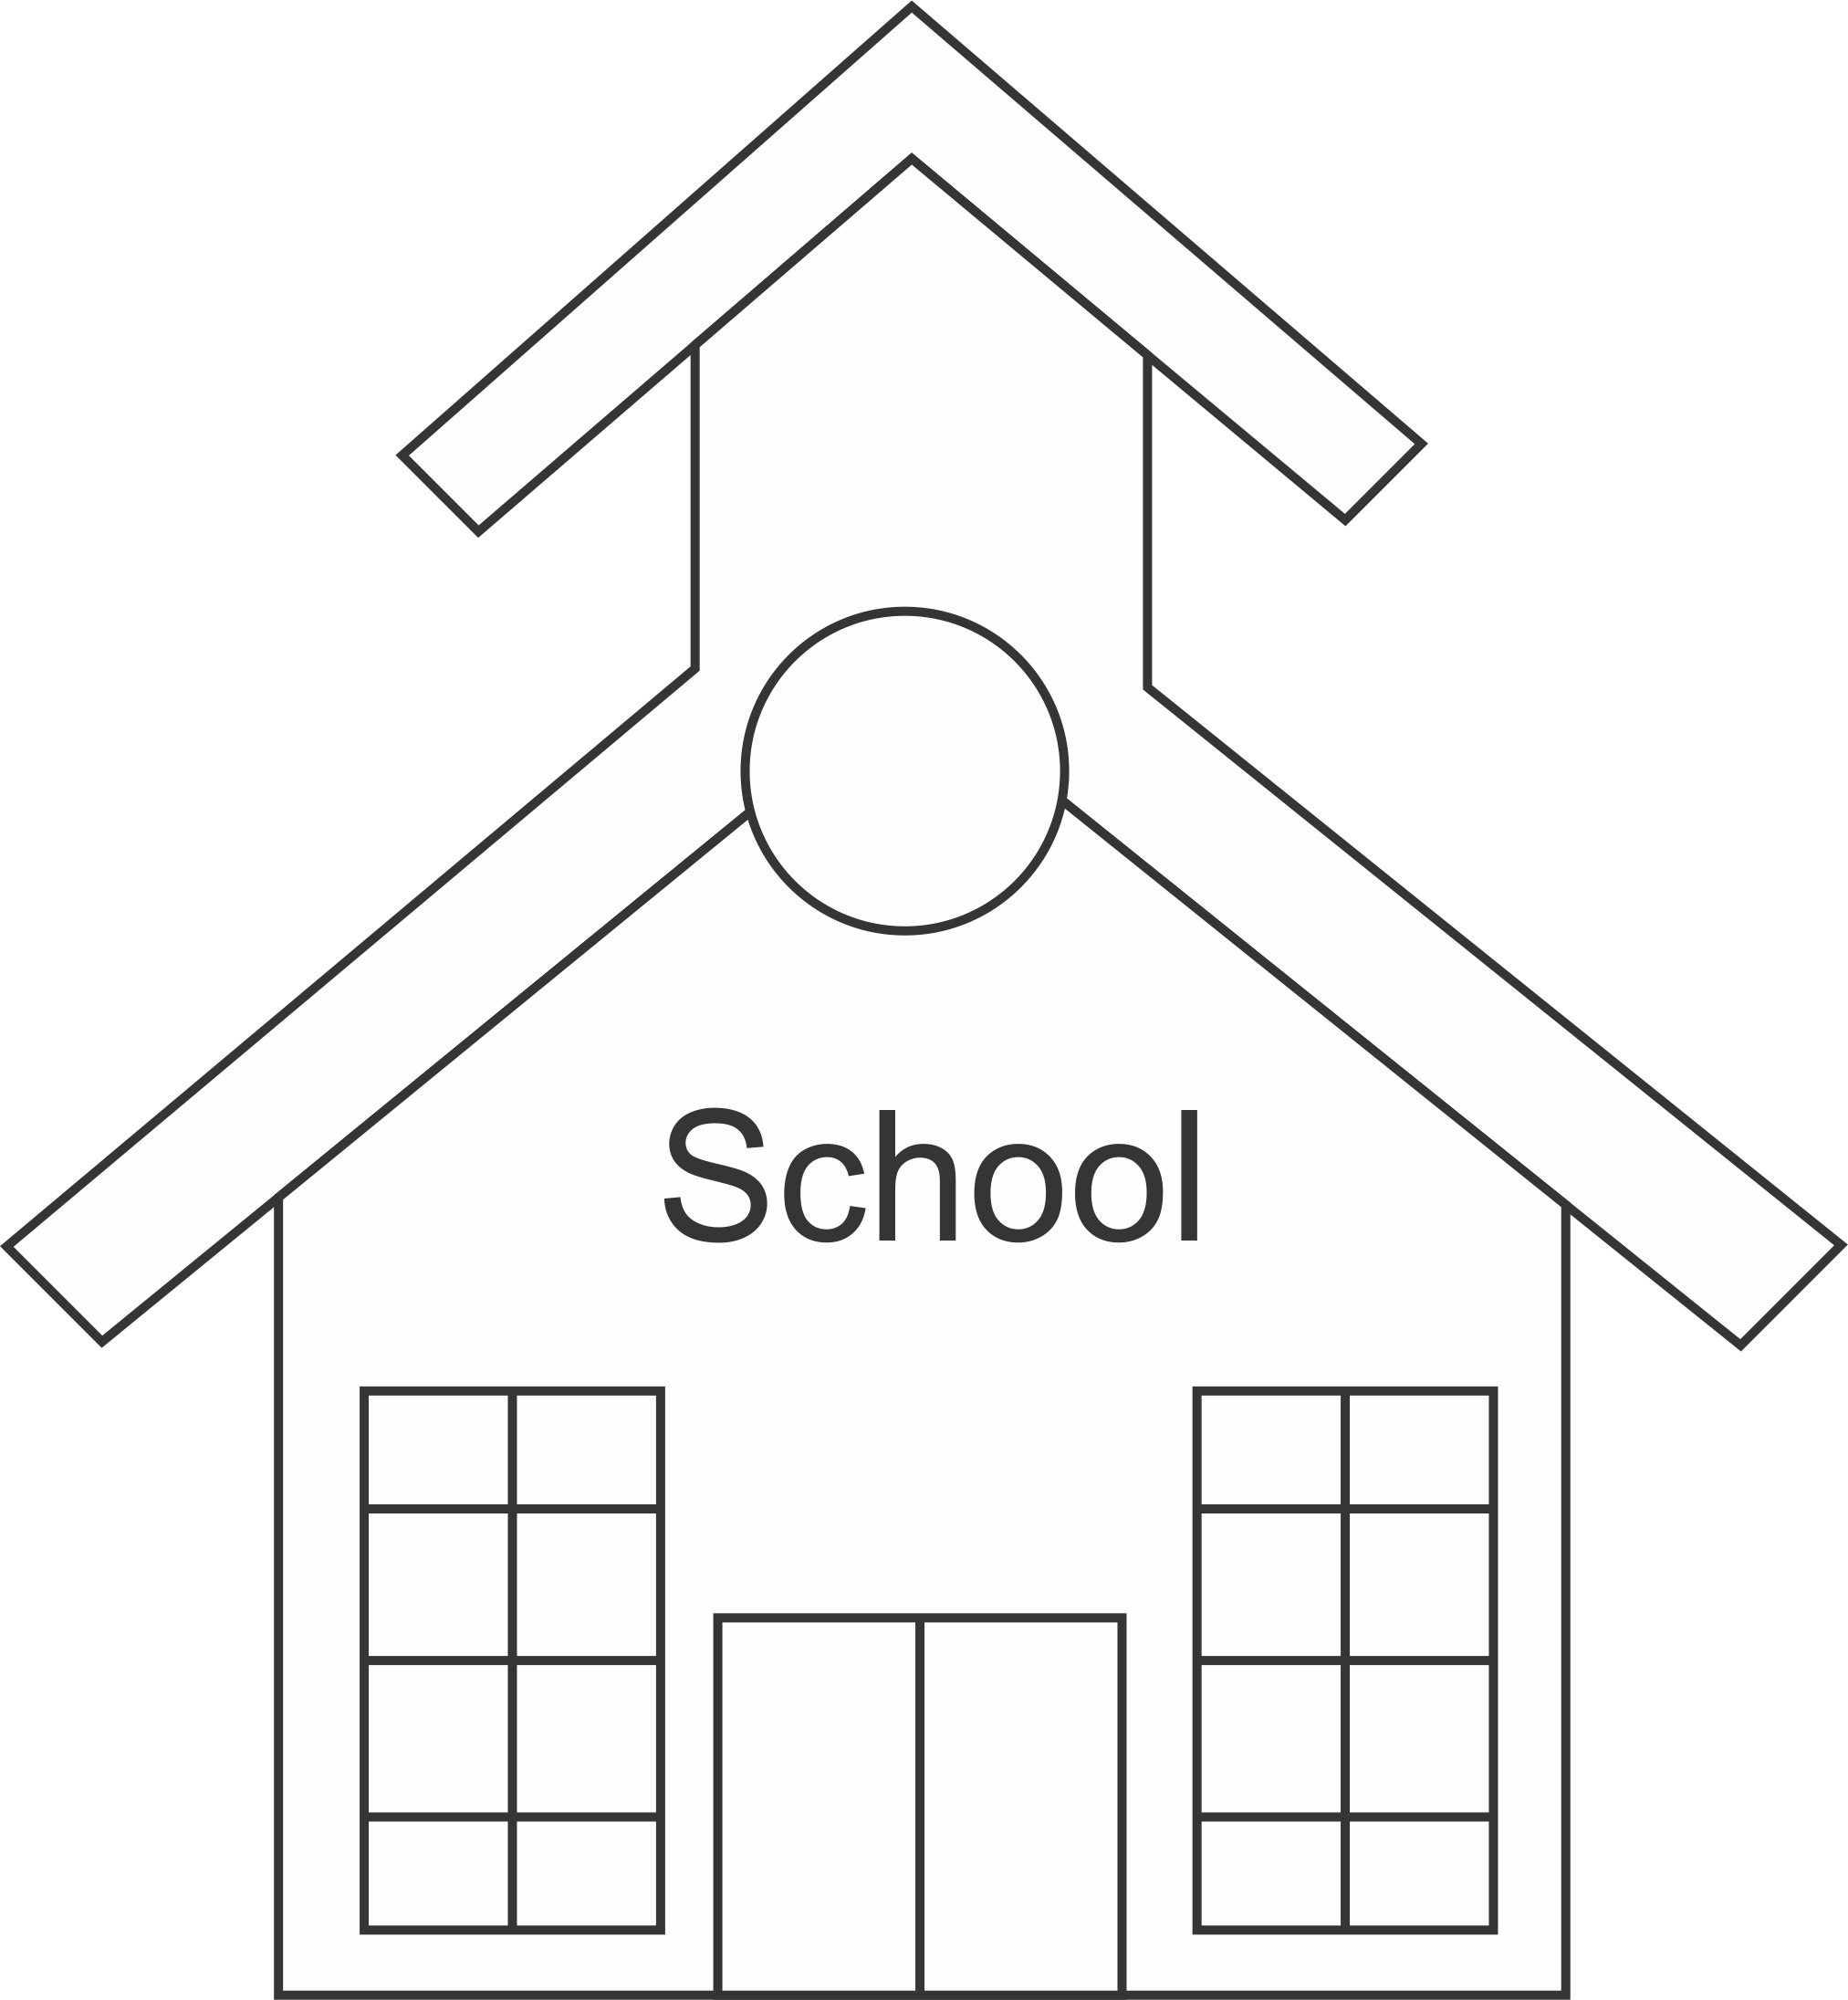 Bell clipart schoolhouse. Free school house outline